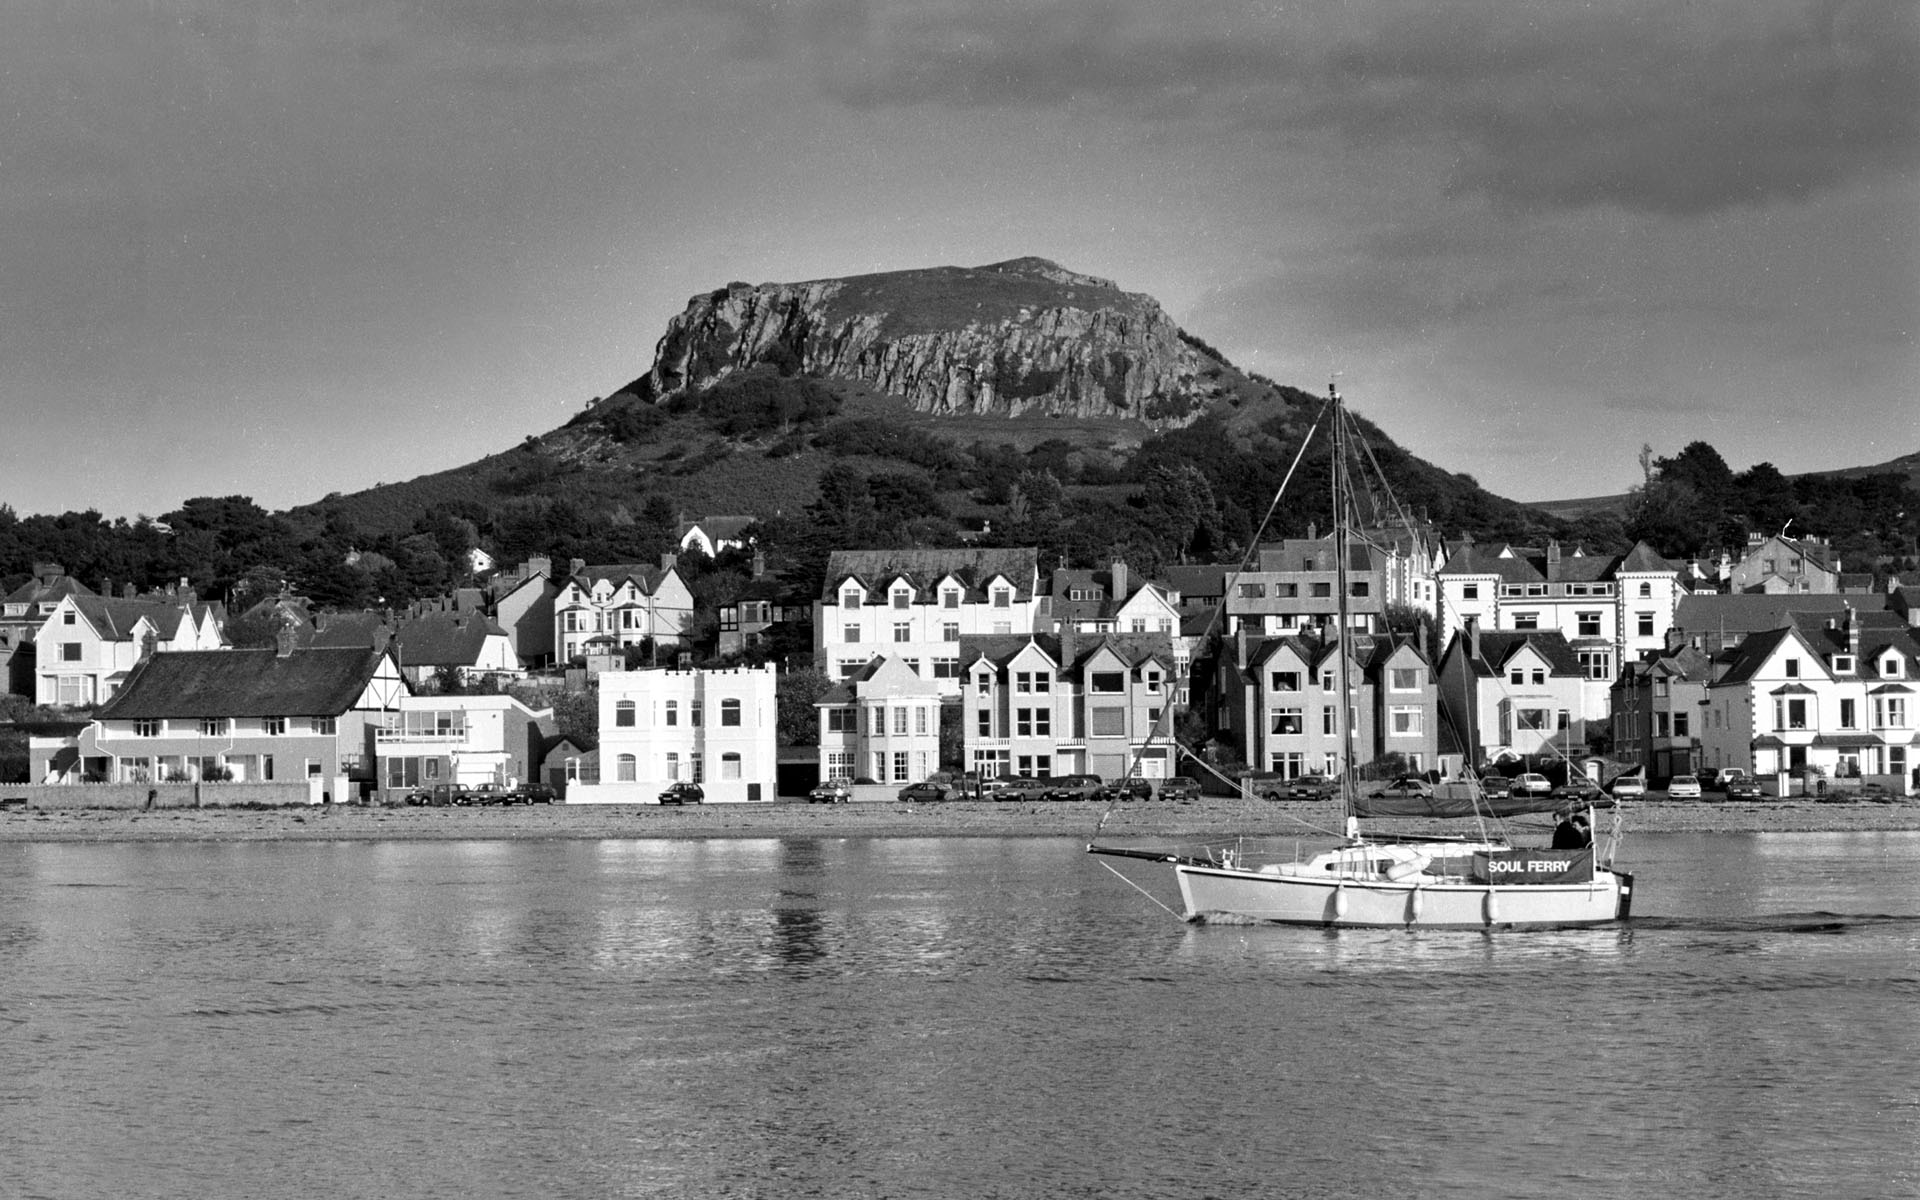 Deganwy - scanned from 35mm negative